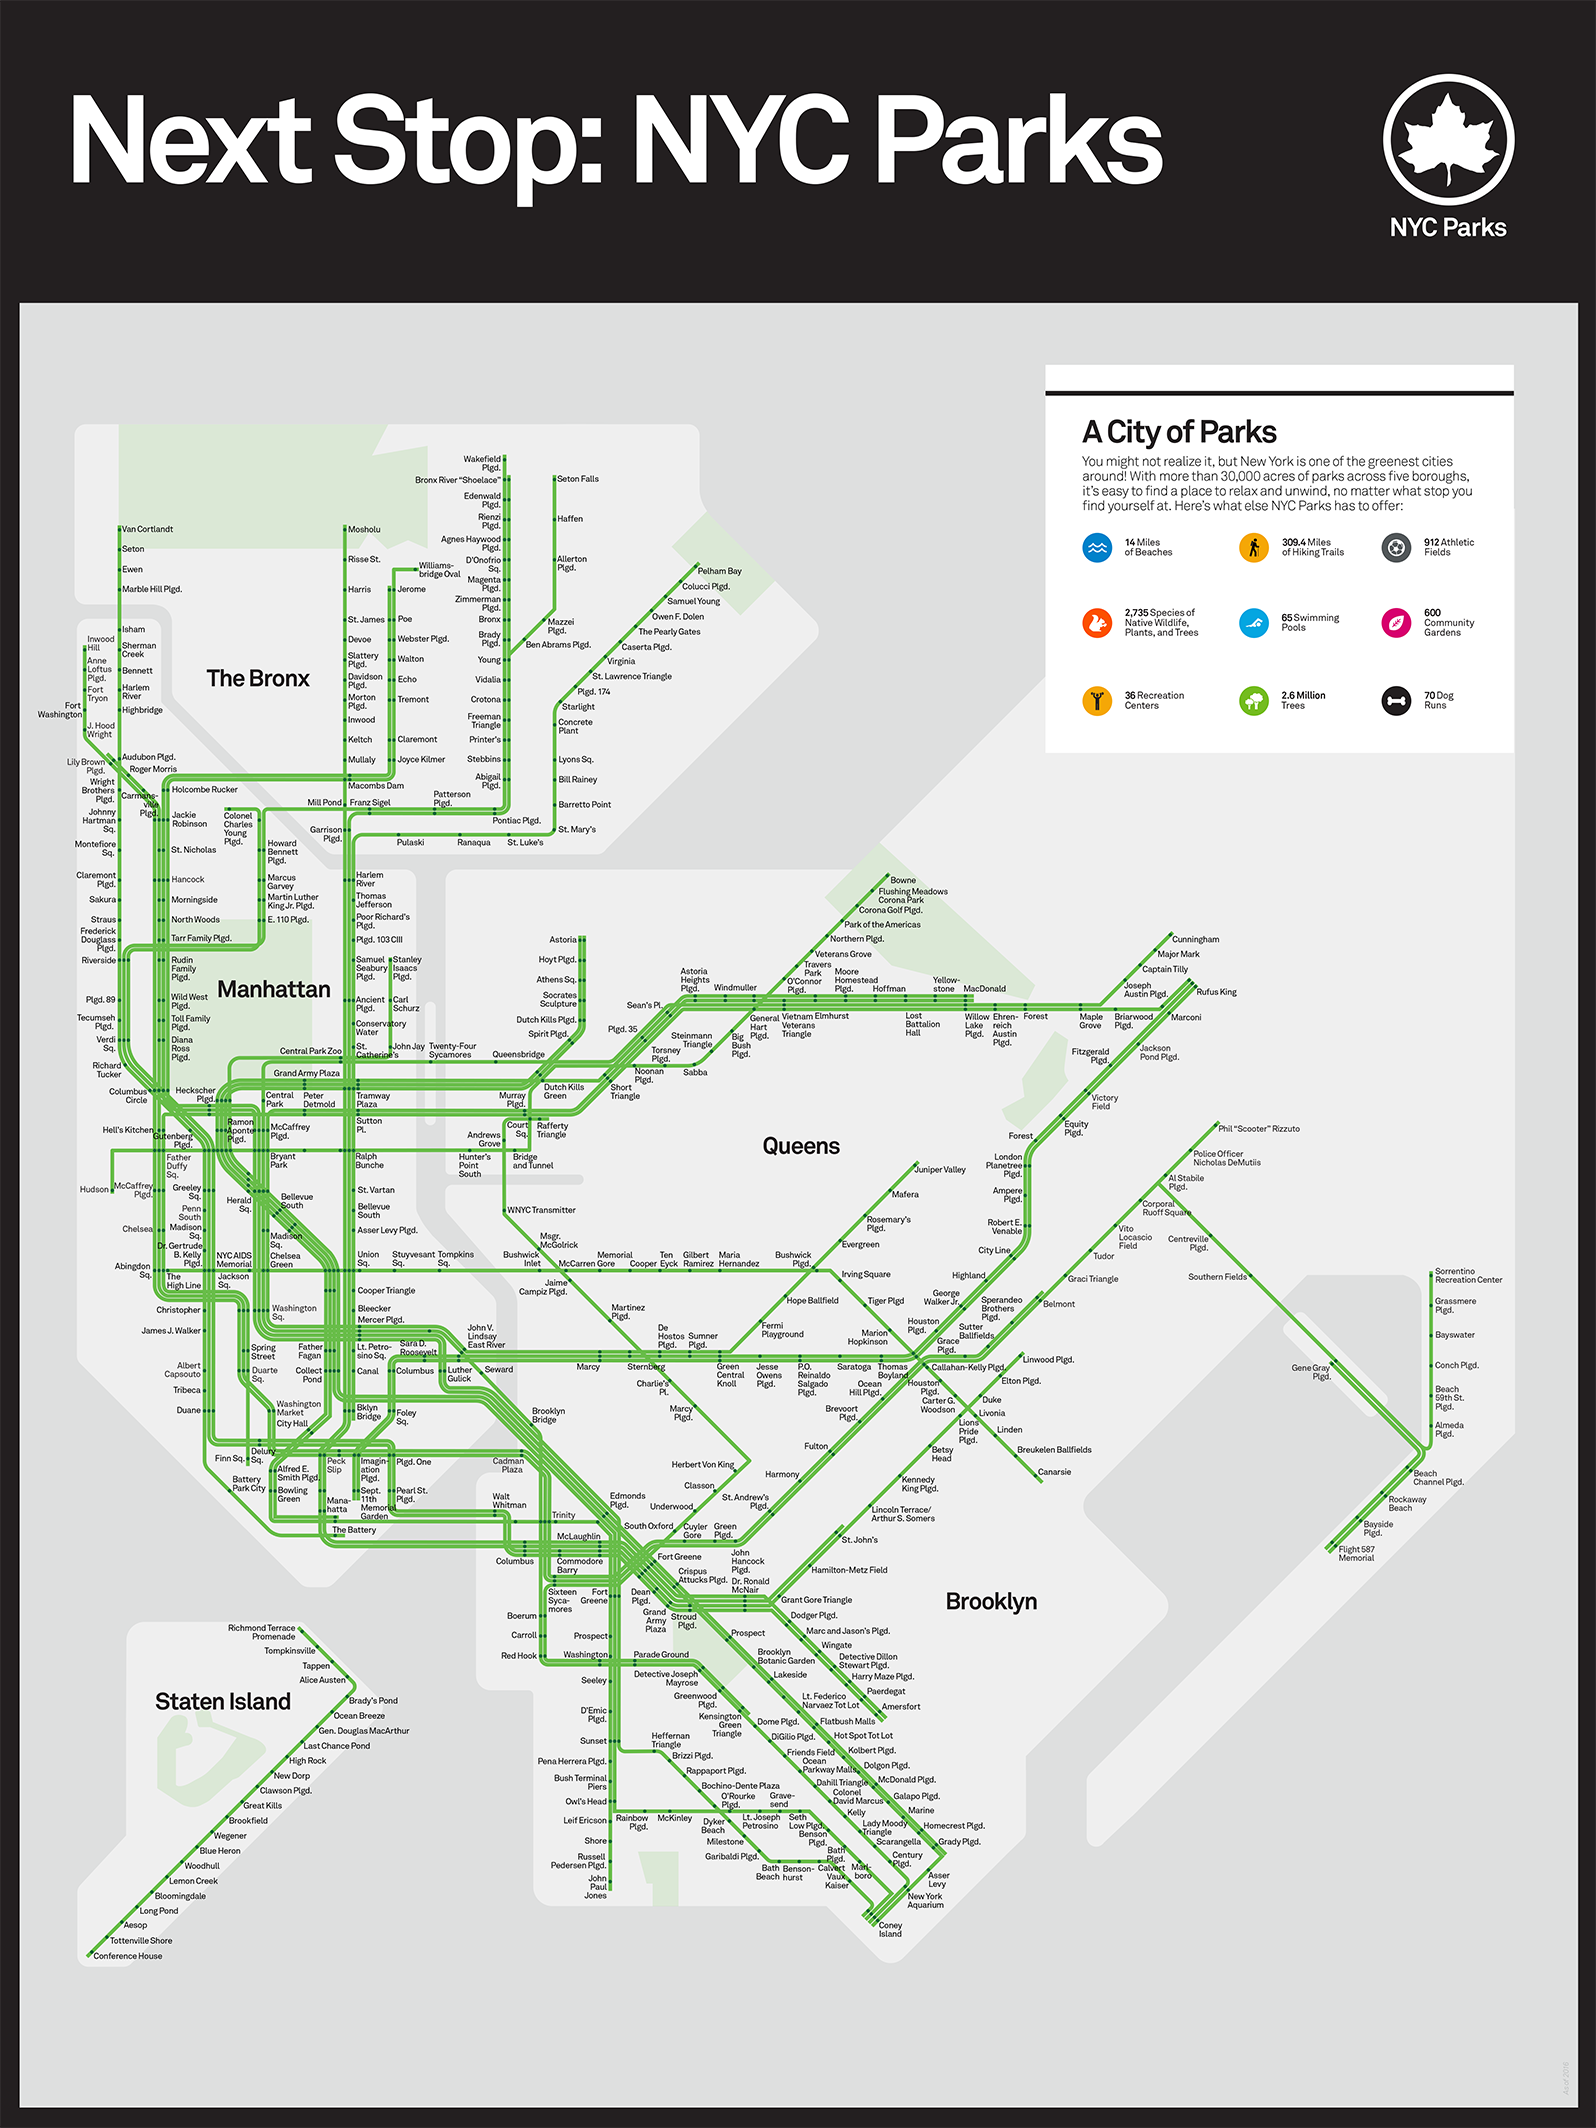 N R Subway Map Nyc.Next Stop Nyc Parks Nyc Parks